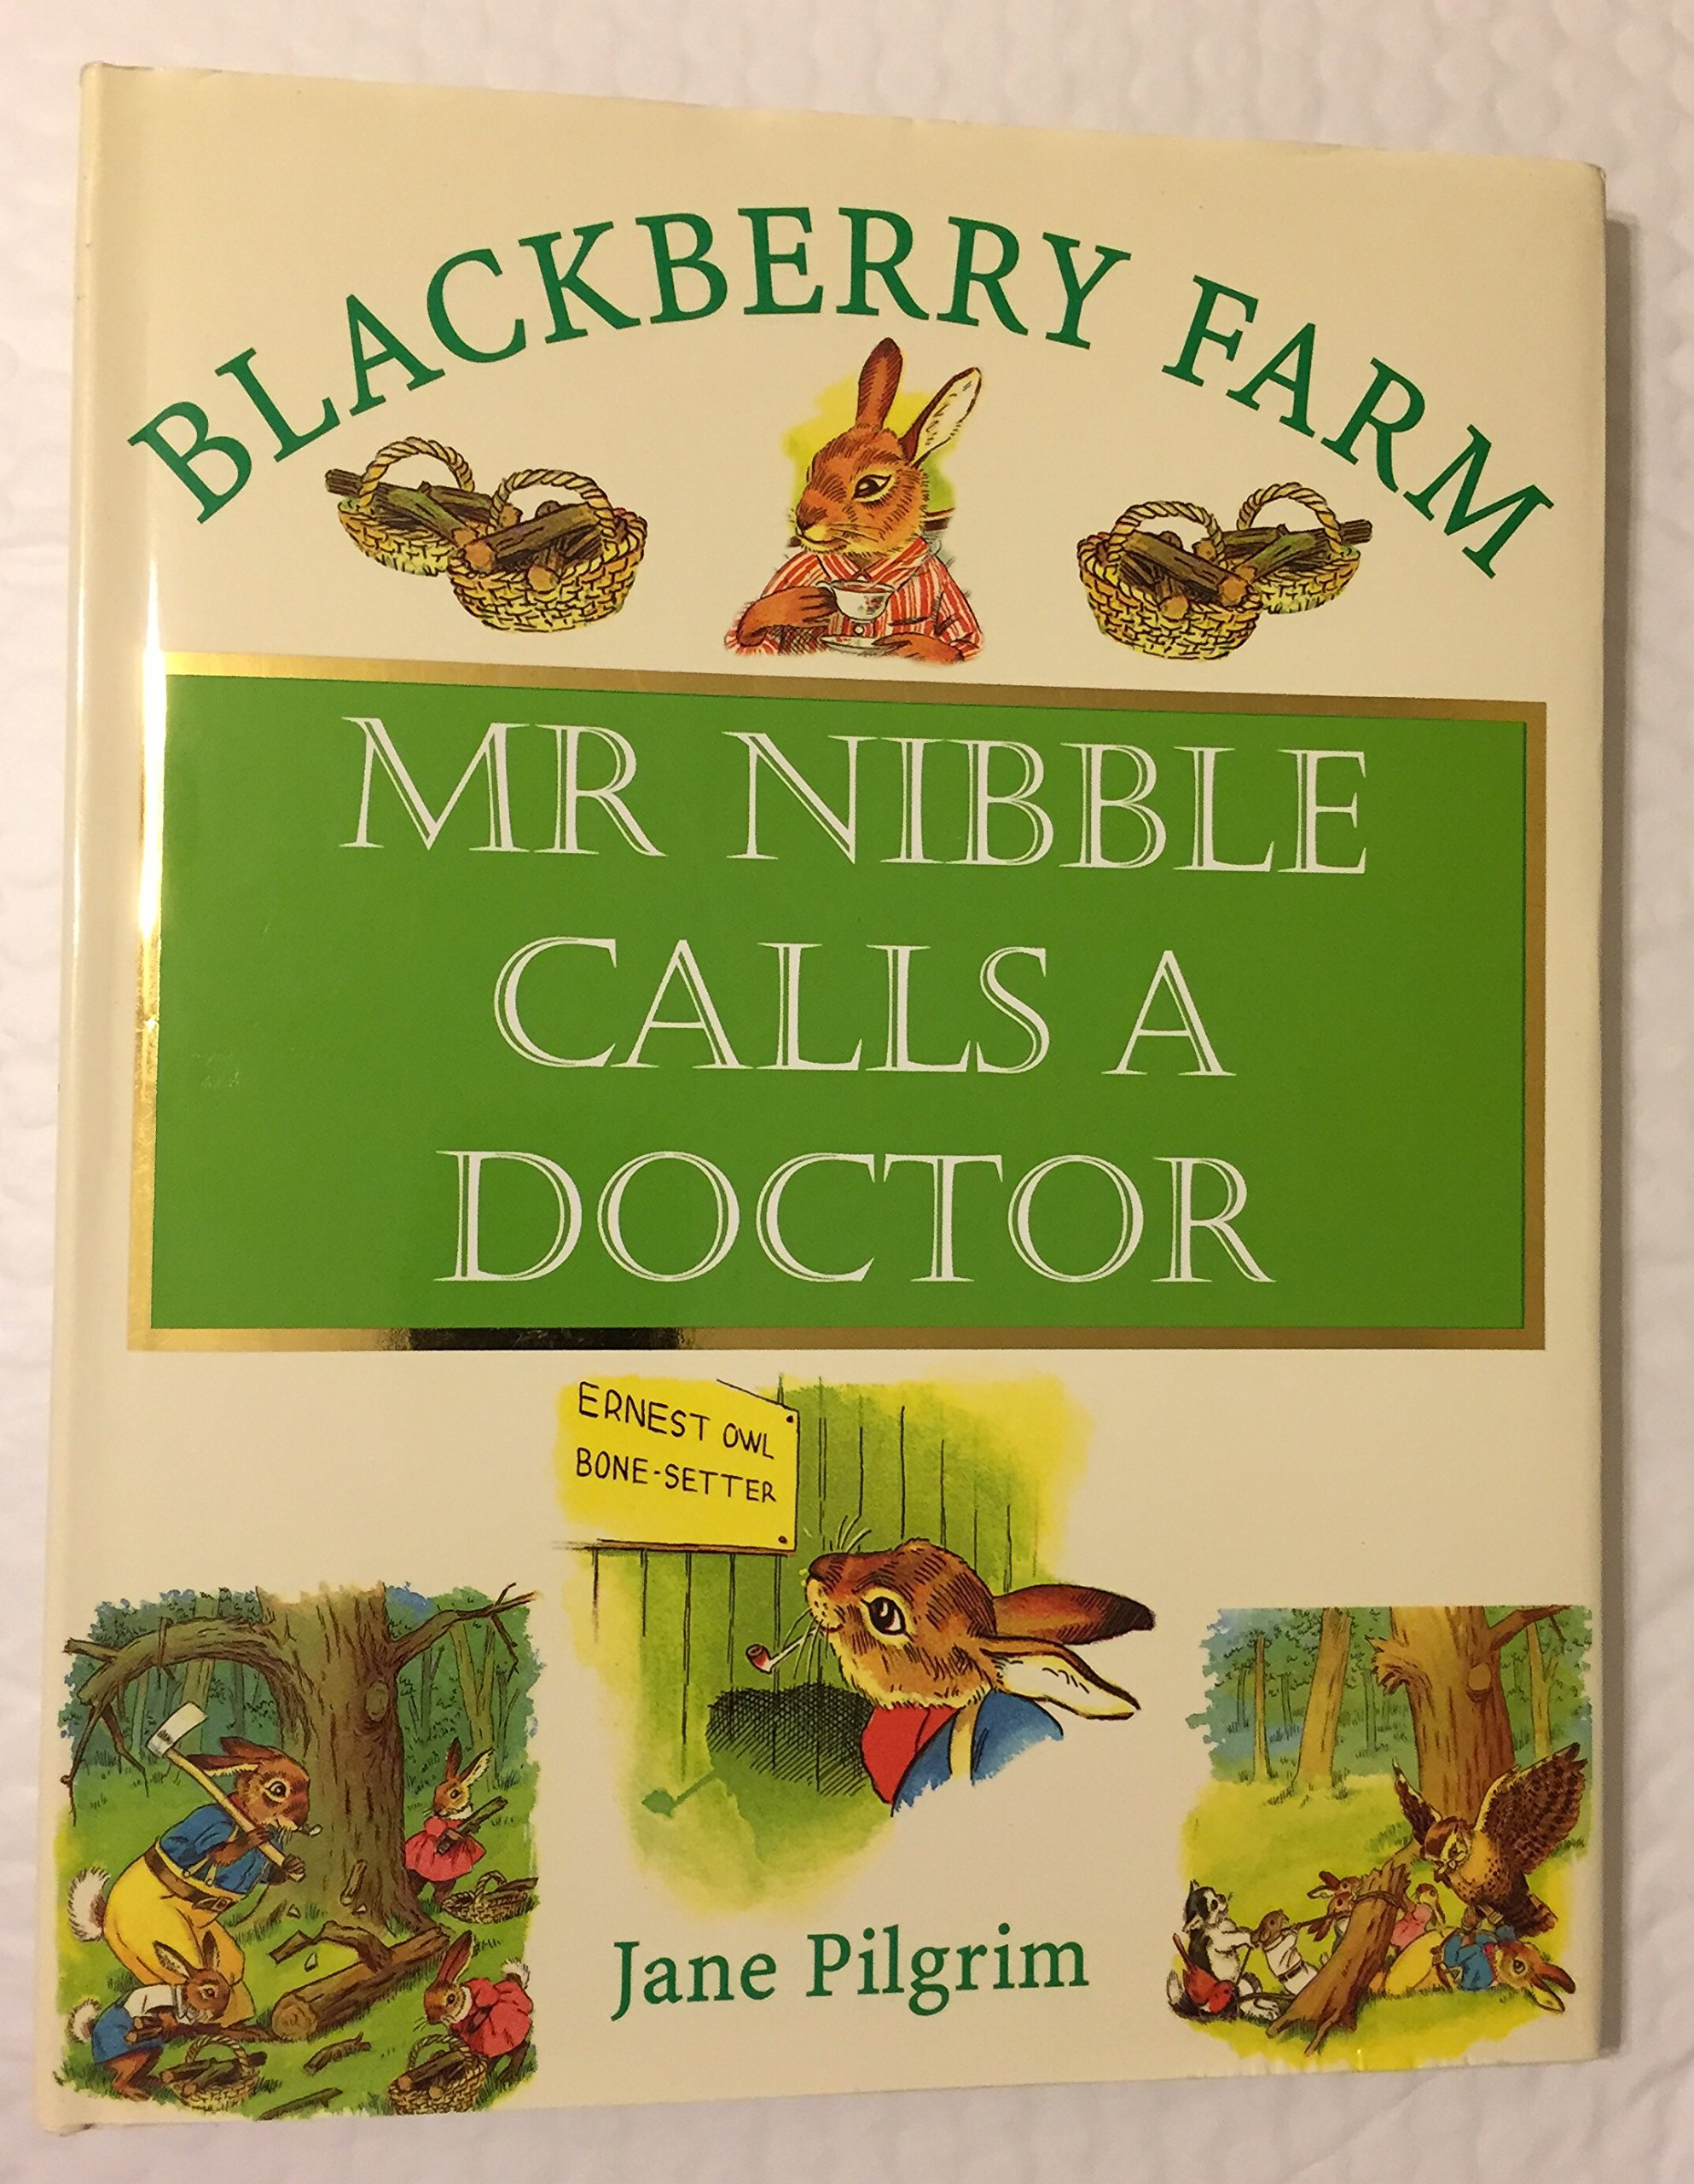 Mr. Nibble Calls a Doctor (Blackberry Farm) pdf epub